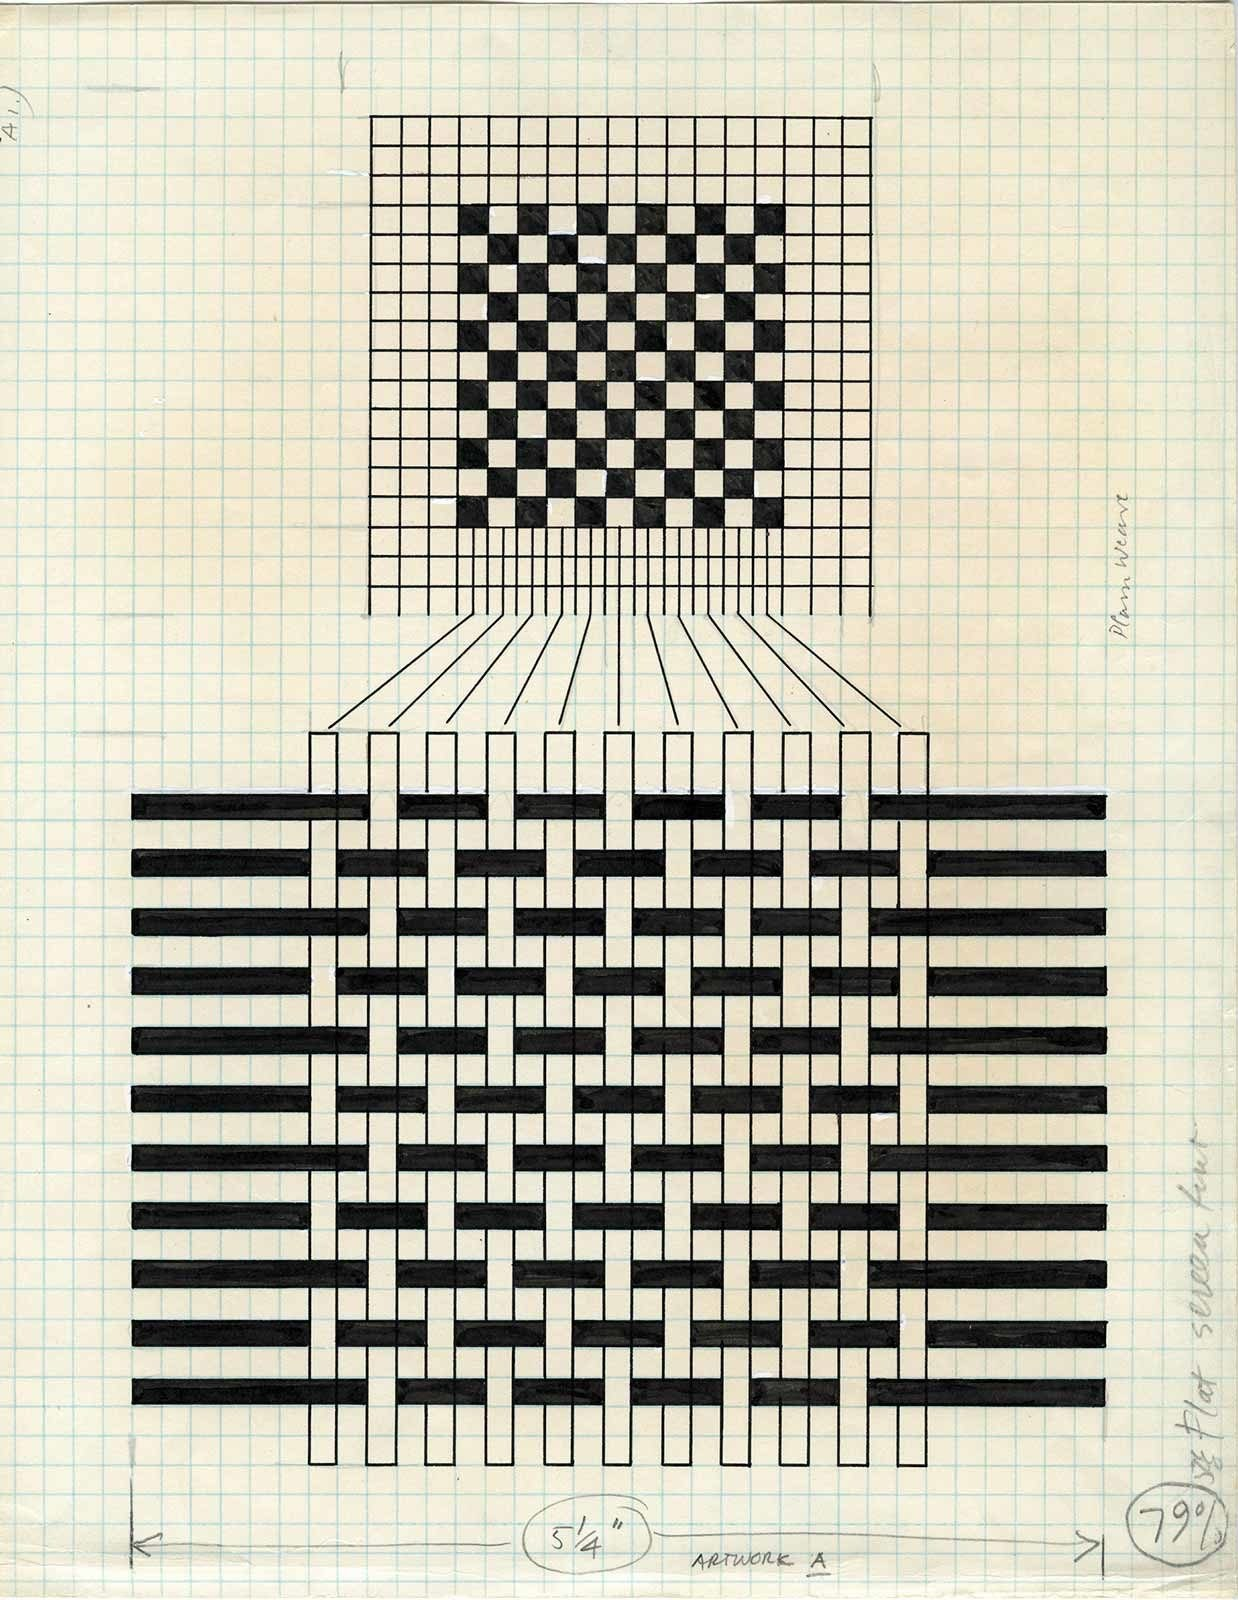 Annie Albers, diagram showing draft notation for a plain weave, ca. 1965